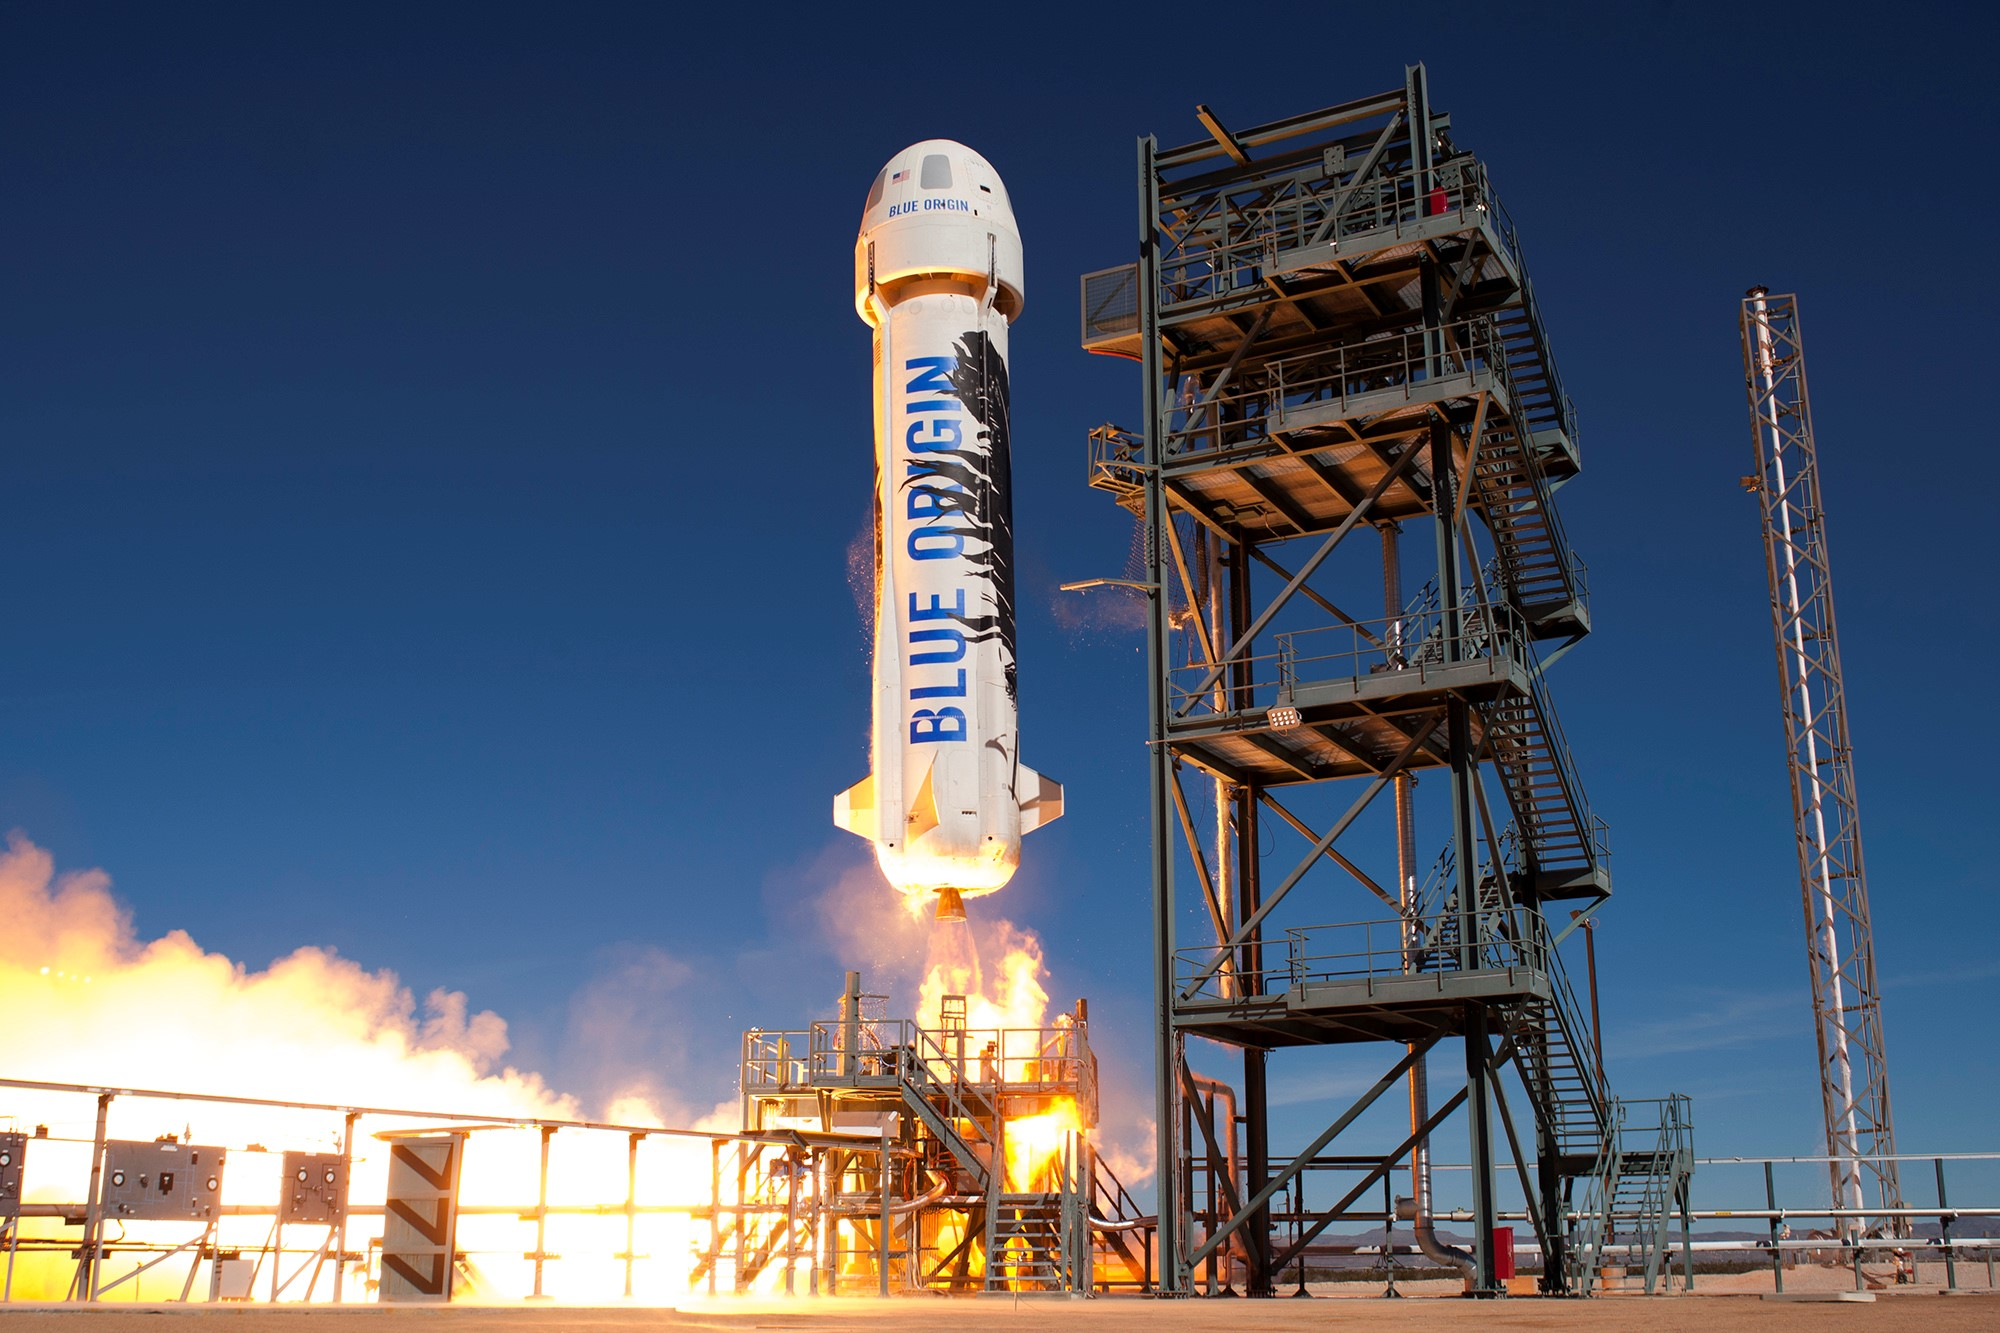 New Shepard booster above was launched a second time and recovered a second time. Photo courtesy of Blue Origin. Used with permission.